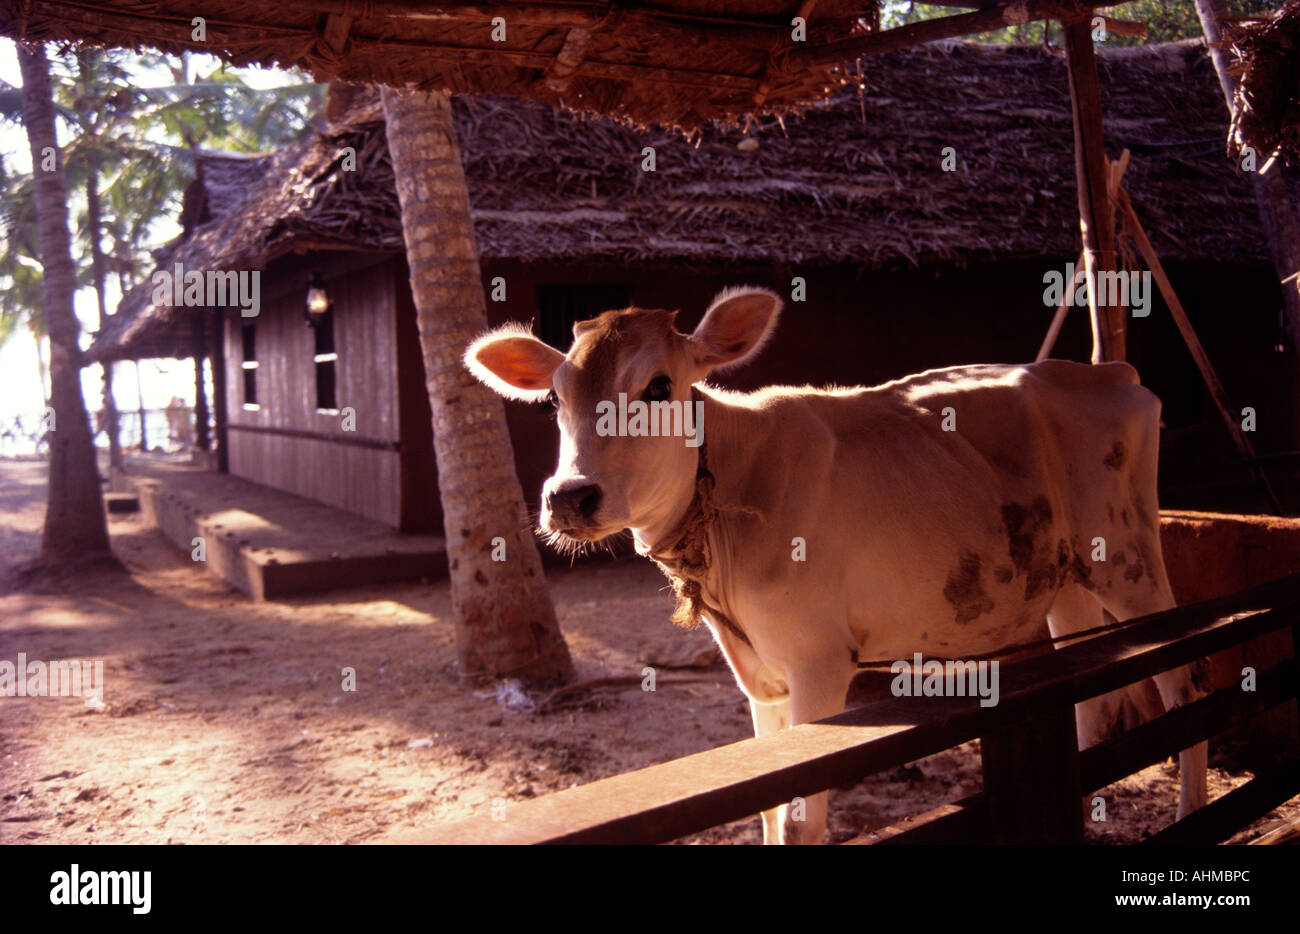 Cattle Shed Of A Traditional Home In Kerala Stock Photo 8288427 Alamy